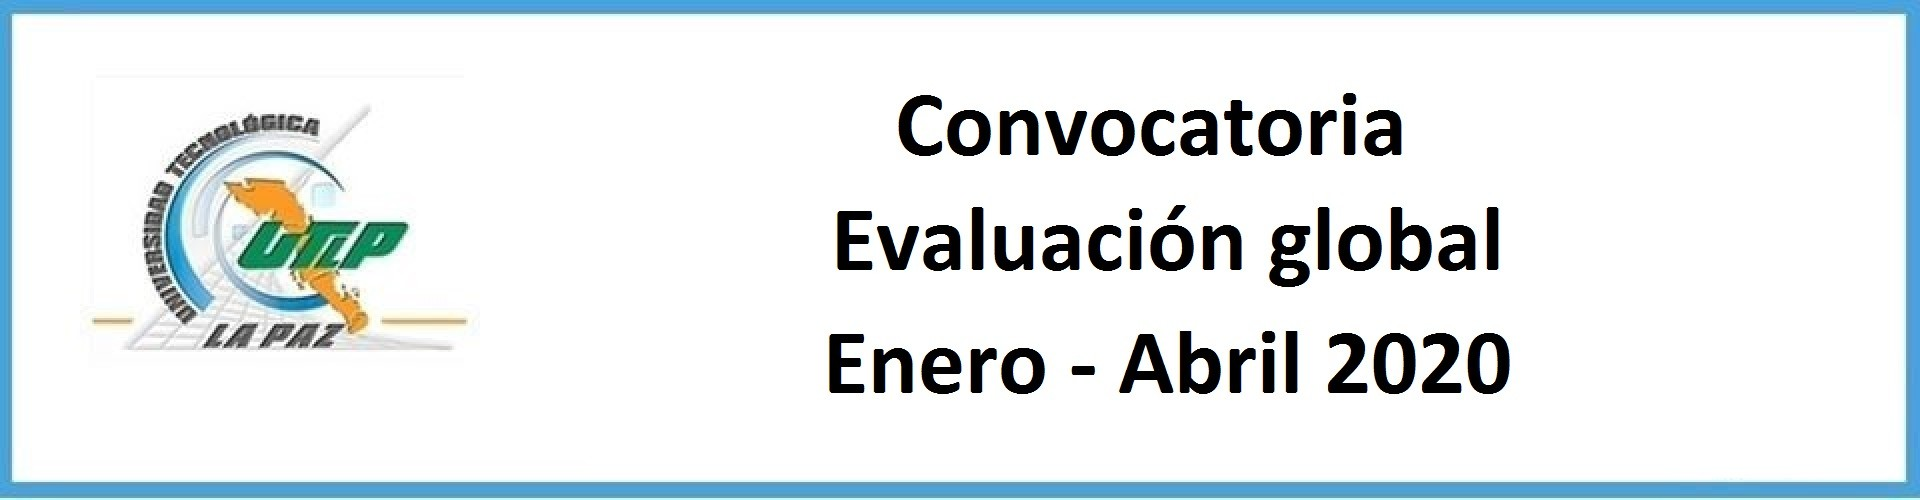 Convocatoria para evaluación global Enero - Abril 2020